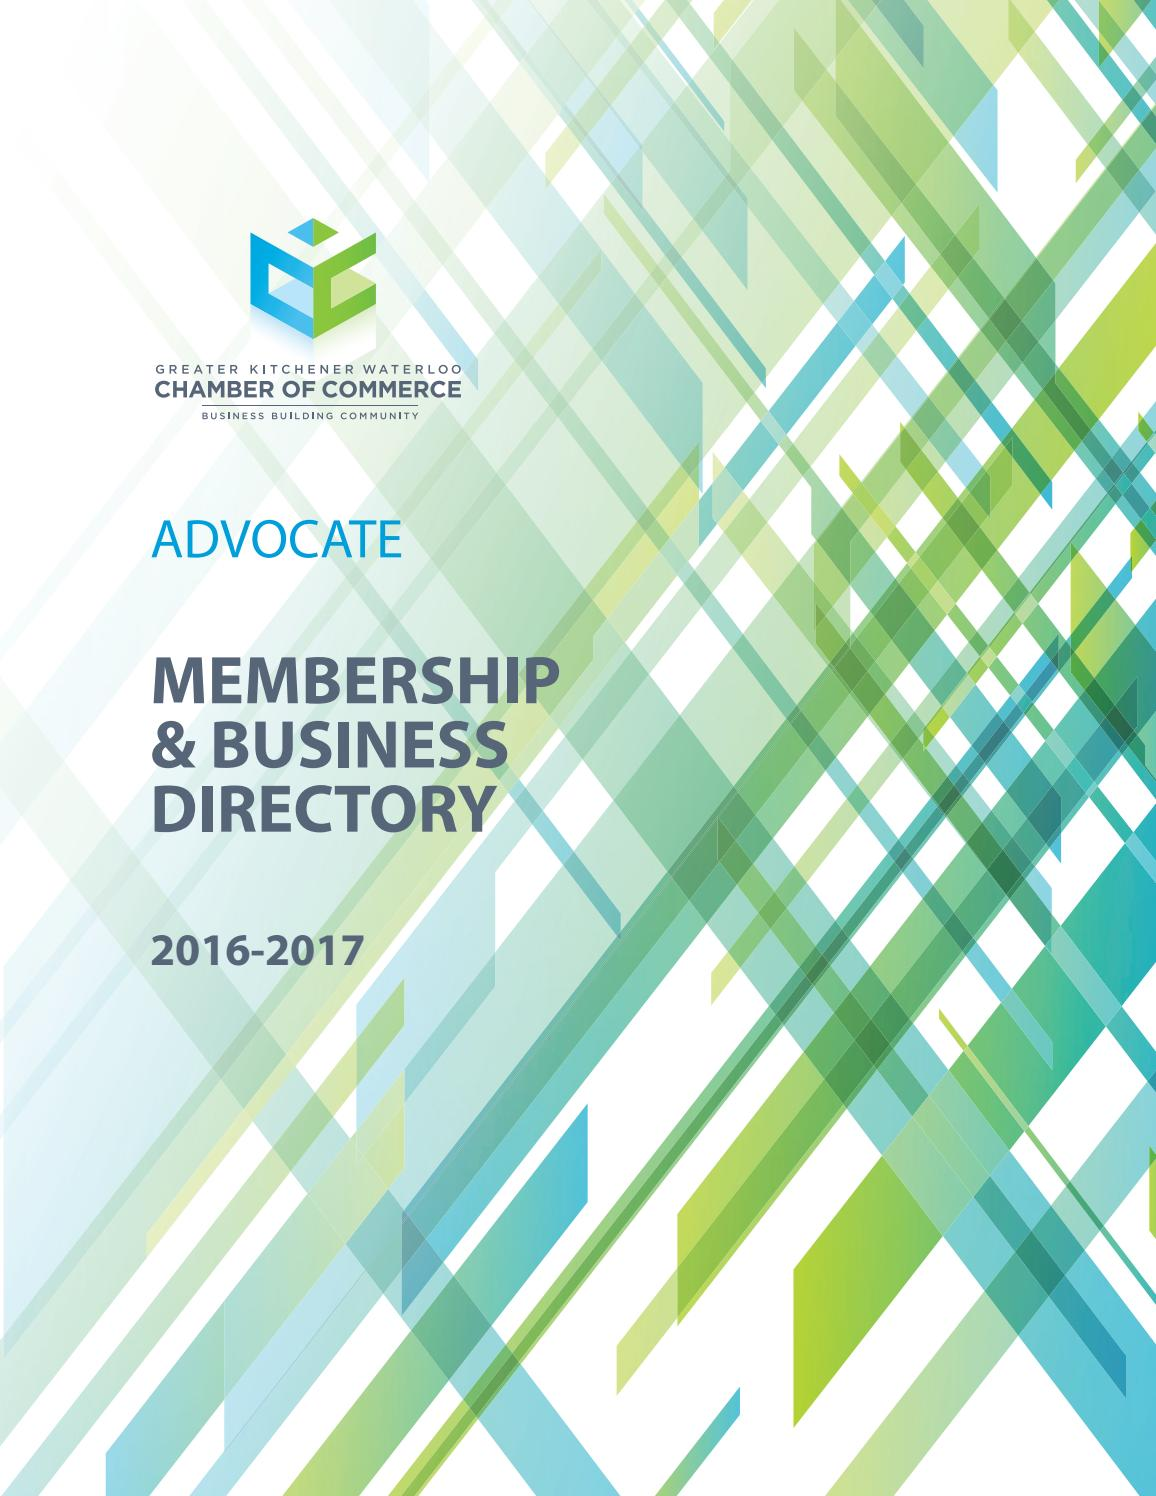 2016 - 2017 Membership & Business Directory by Natalie Hemmerich - issuu